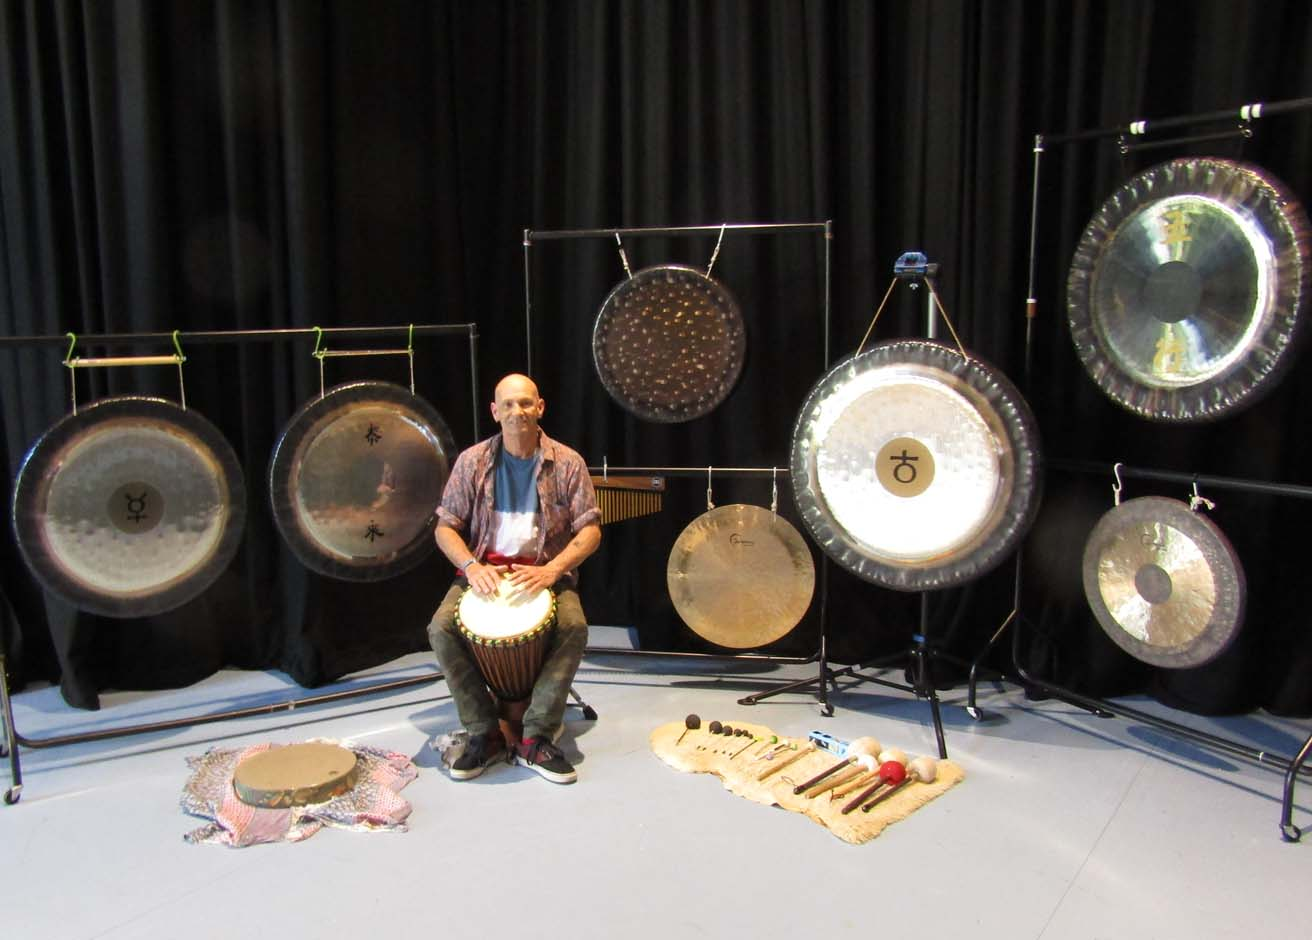 Gong bath setup at the Yard Theatre in Hulme, Manchester